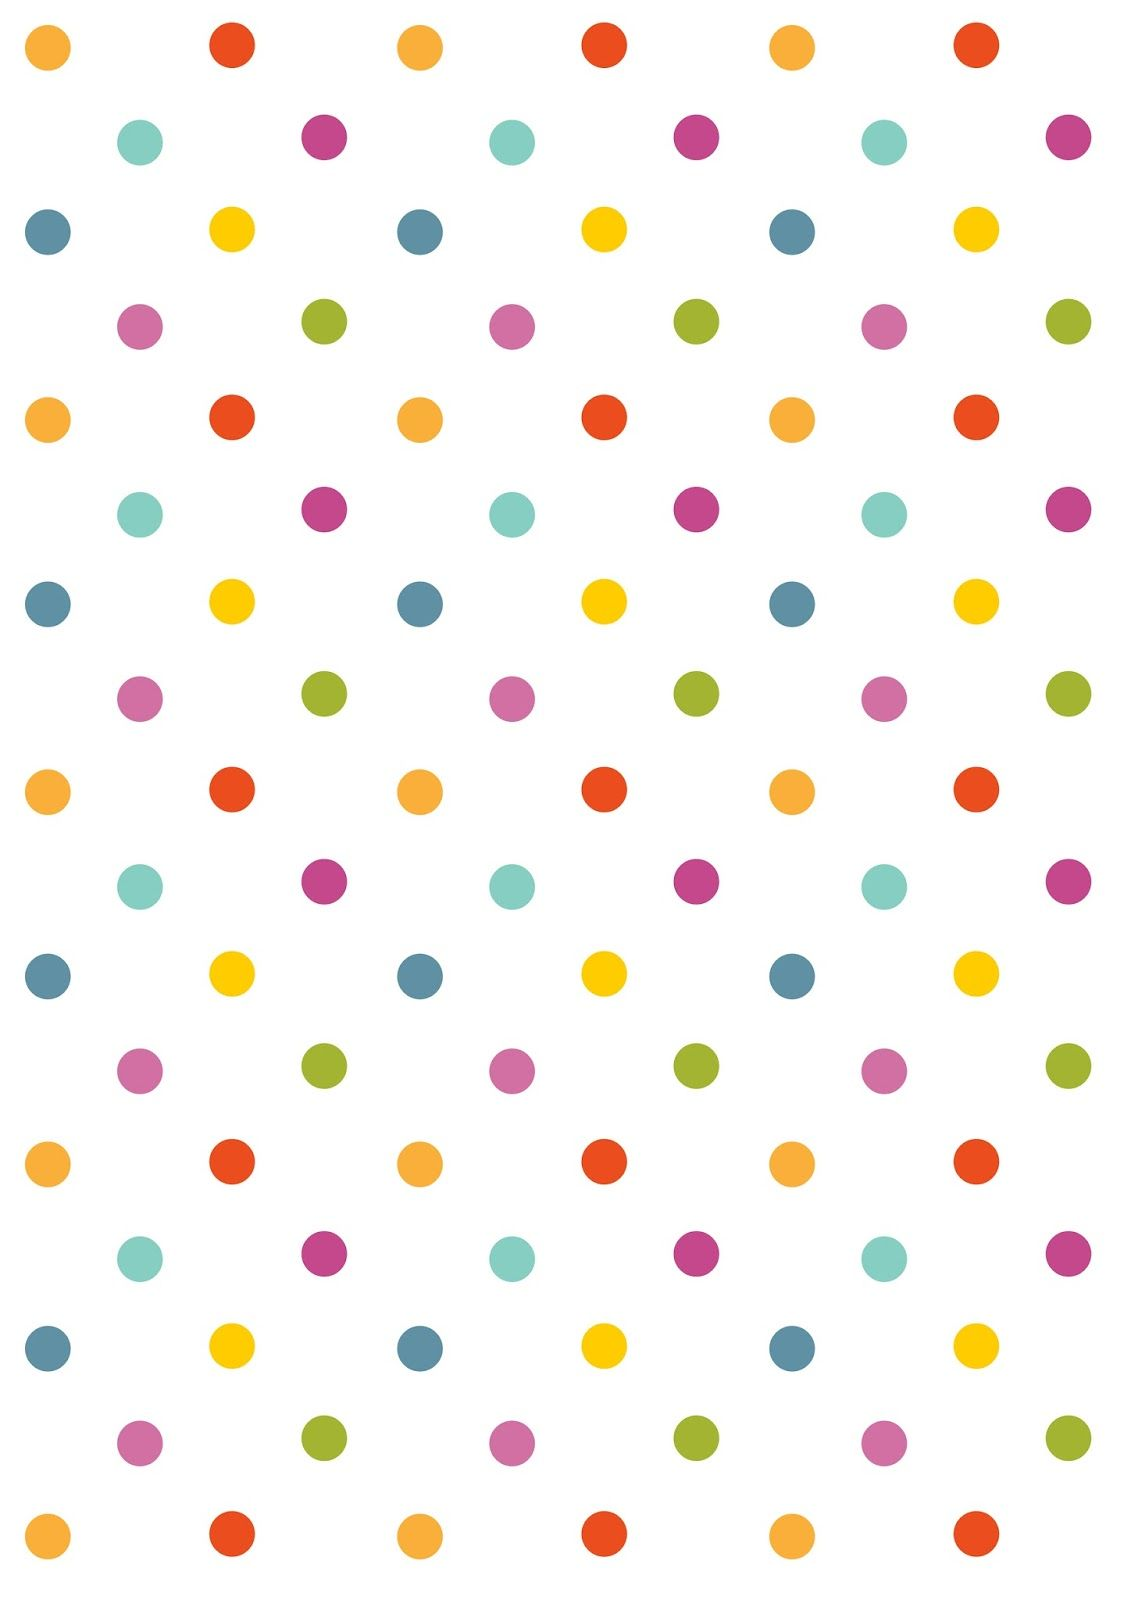 meinlilapark diy printables and downloads free digital polka dot rh pinterest com